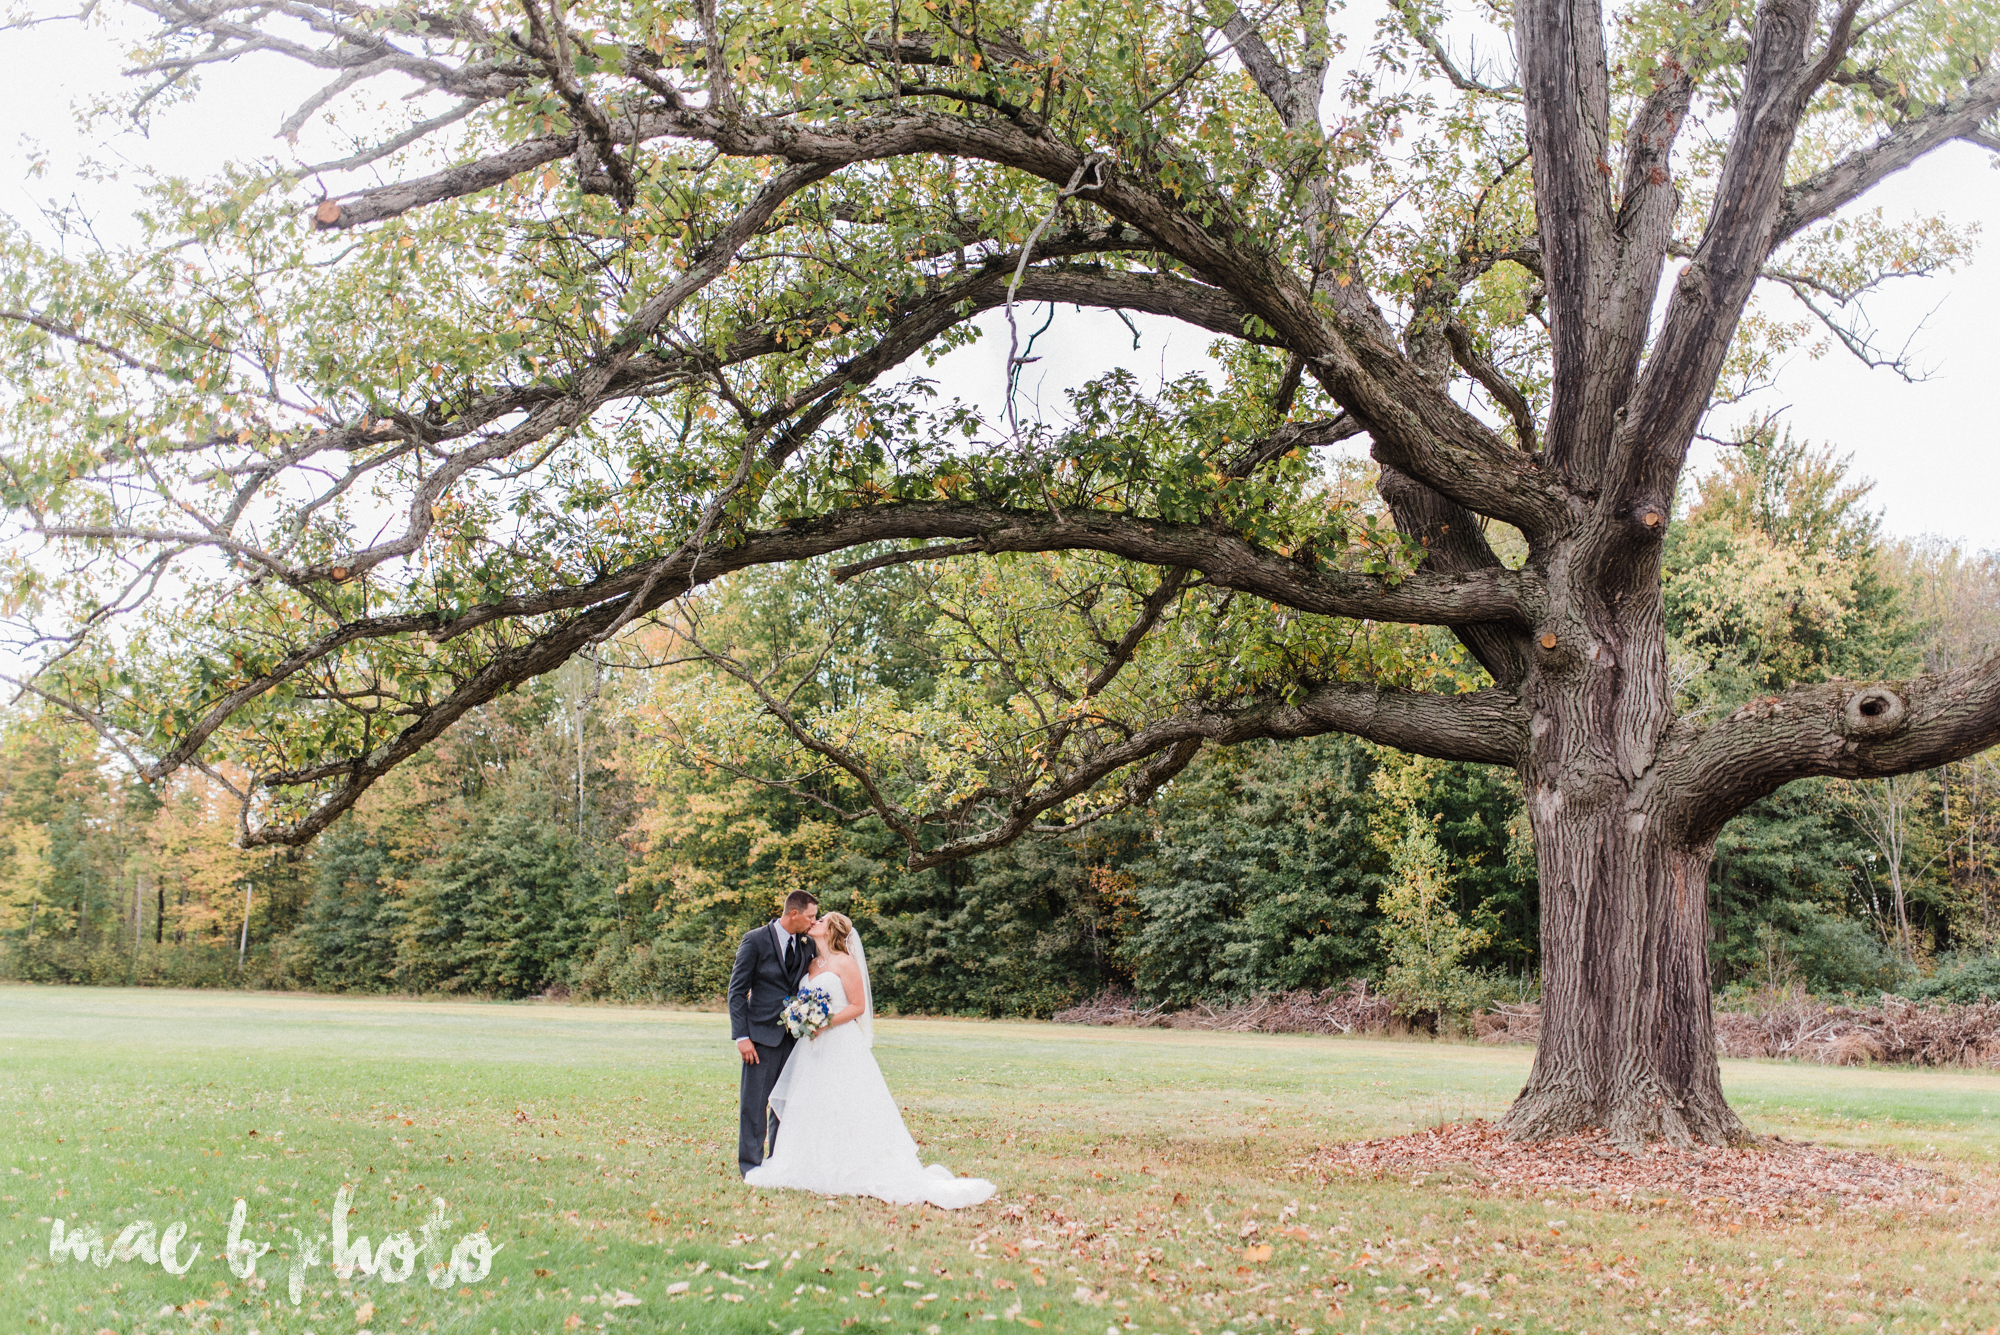 becca and rich's large, personalized fall wedding in orwell ohio and at the metroplex in girard ohio photographed by youngstown wedding photographer mae b photo-41.jpg